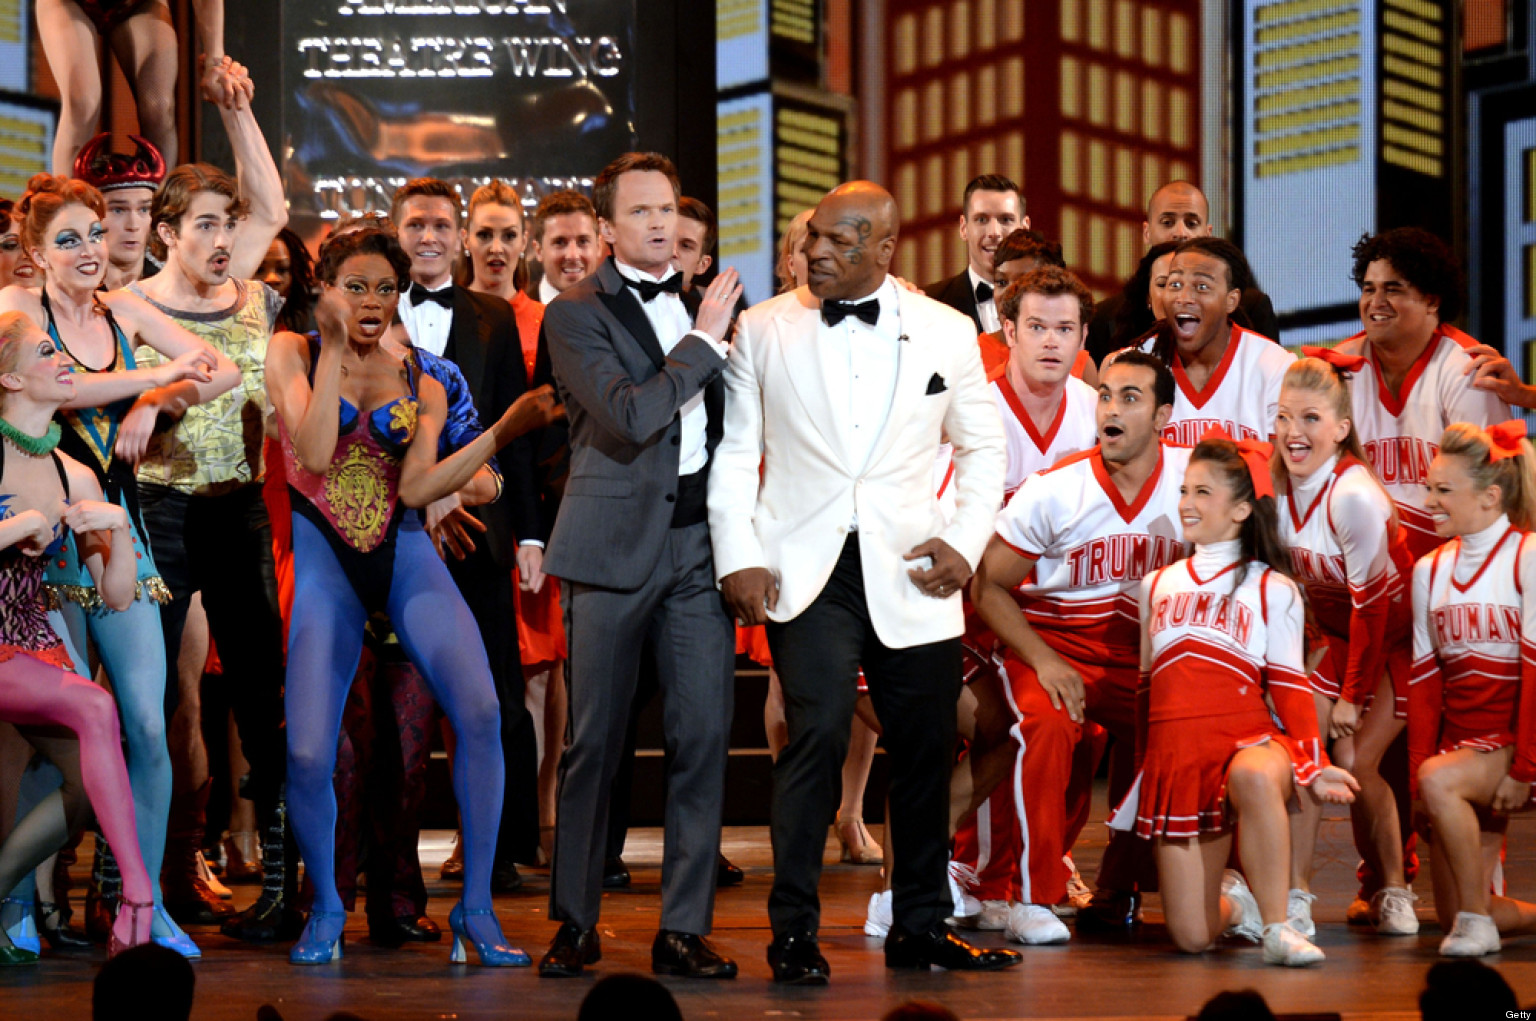 Best of the Tony Awards: Bigger with Neil Patrick Harris and Mike Tyson (2013 Opening Song)